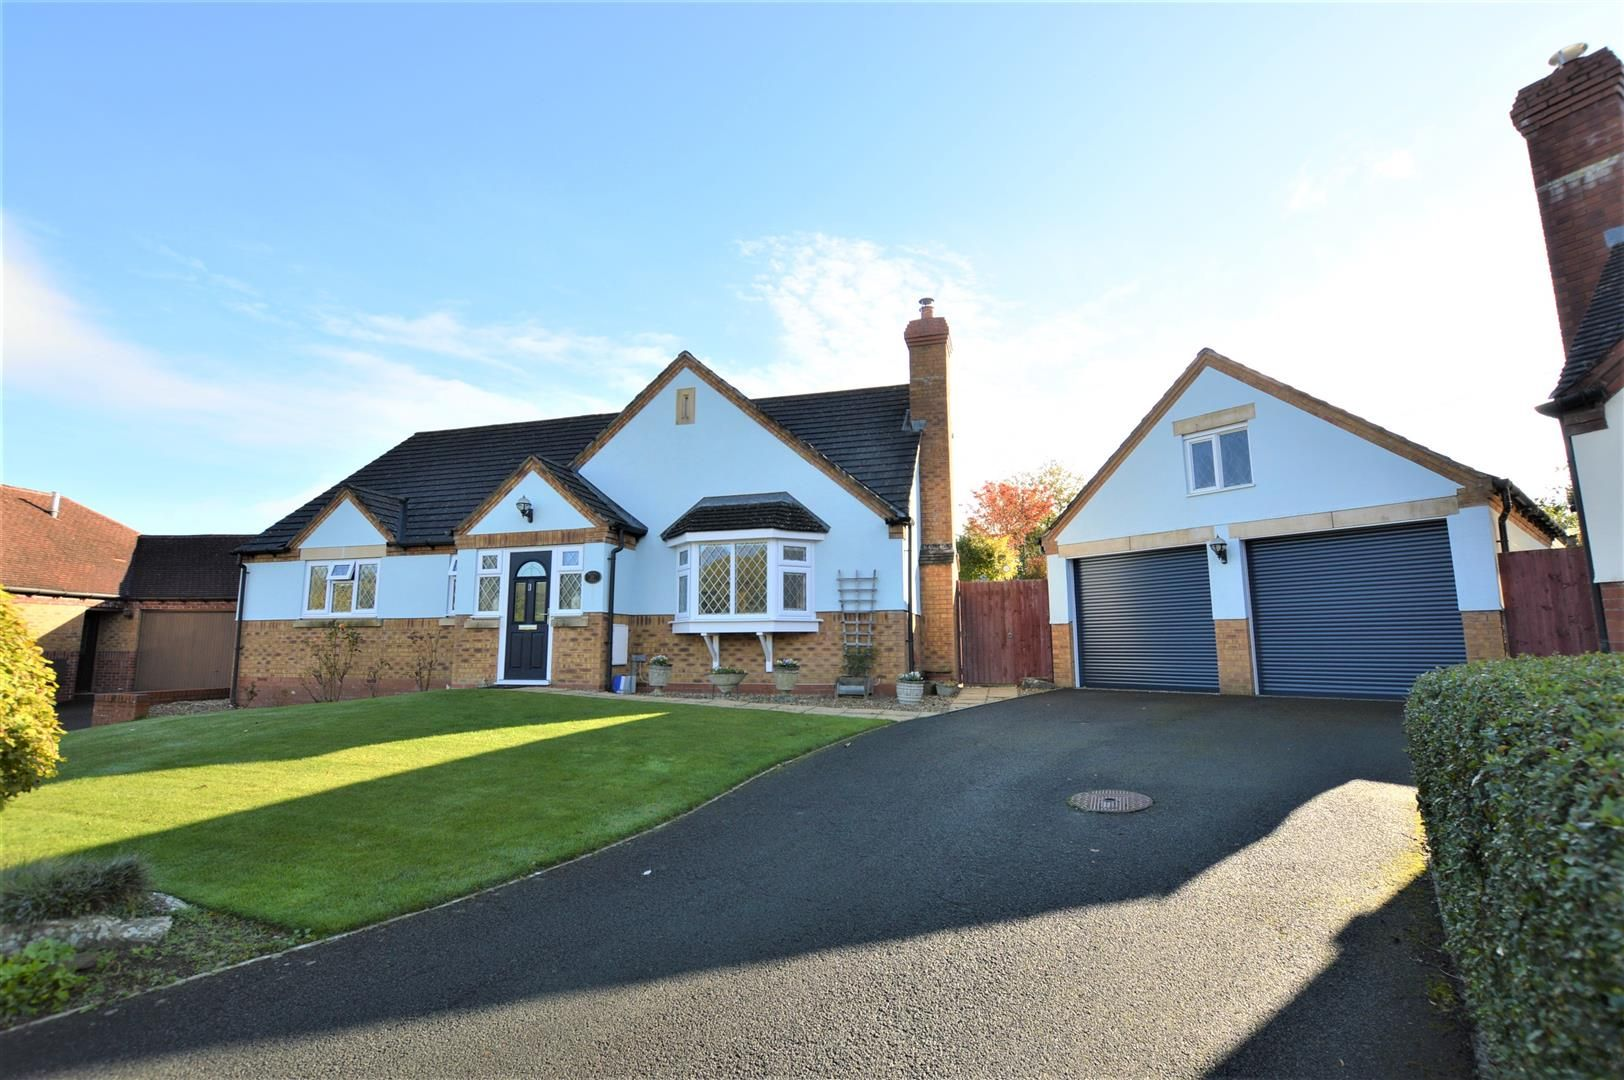 3 bed detached-bungalow for sale in Norton, LD8